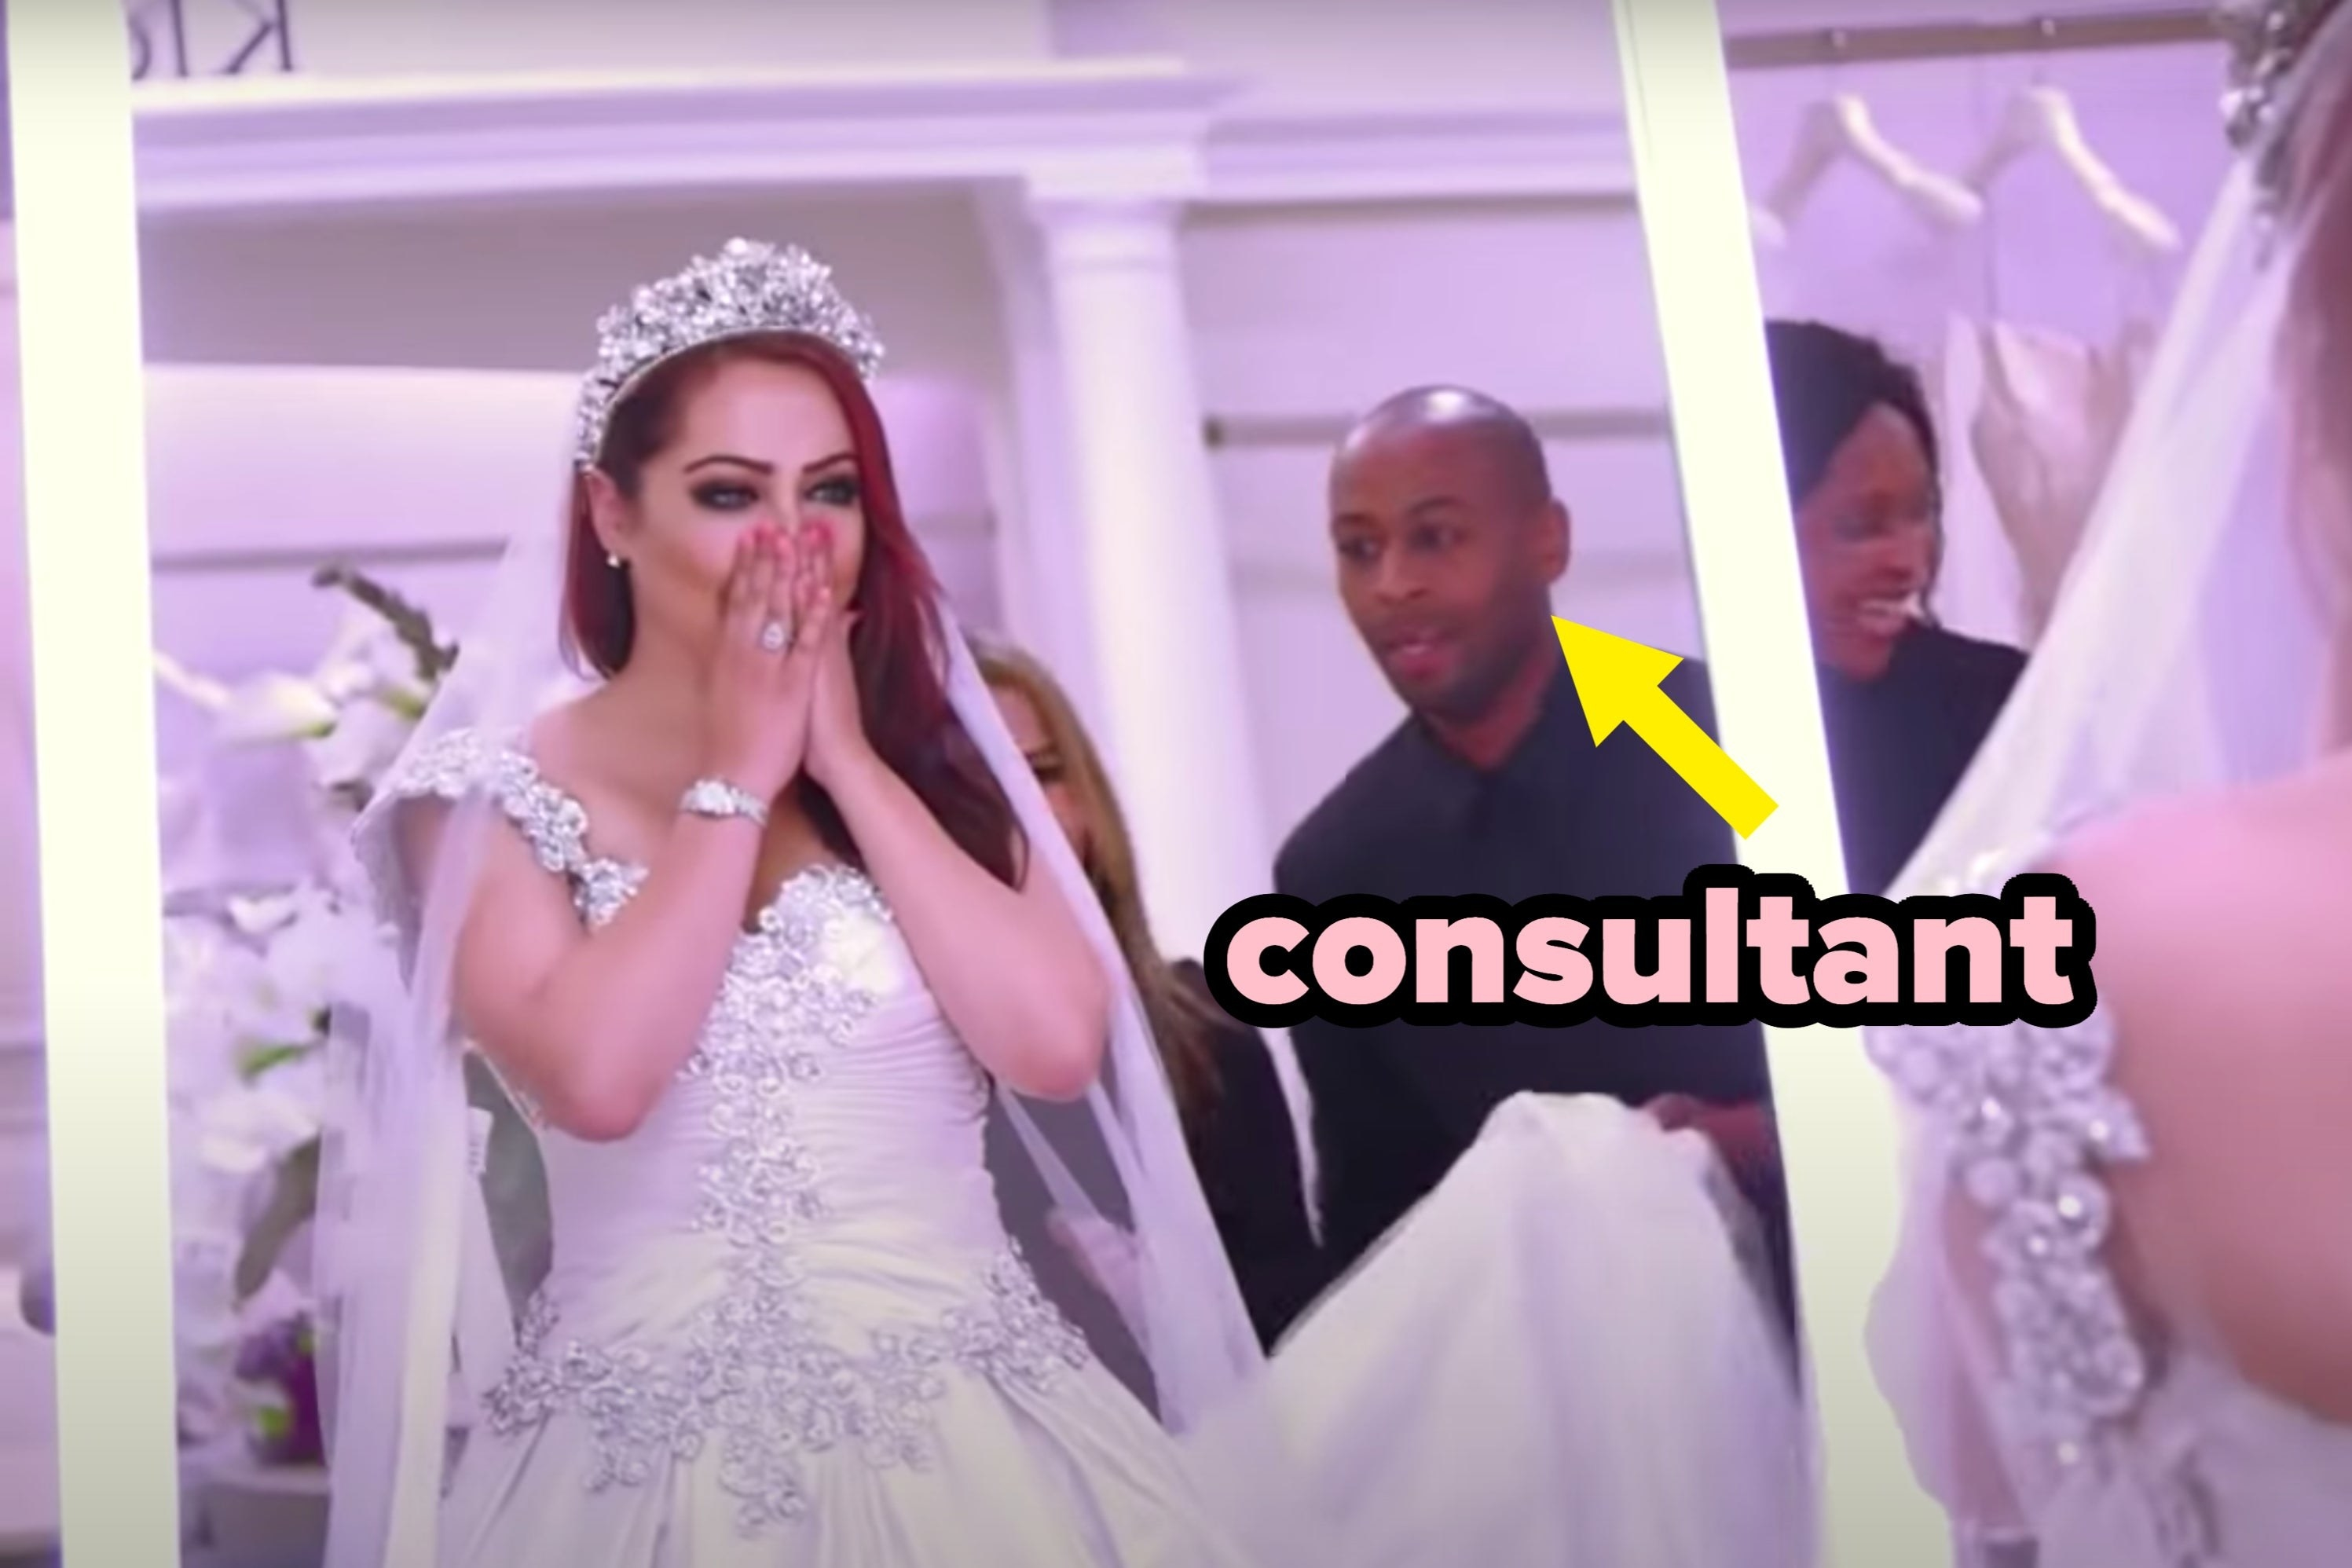 """Bride looking shocked with arrow pointing to """"consultant"""""""